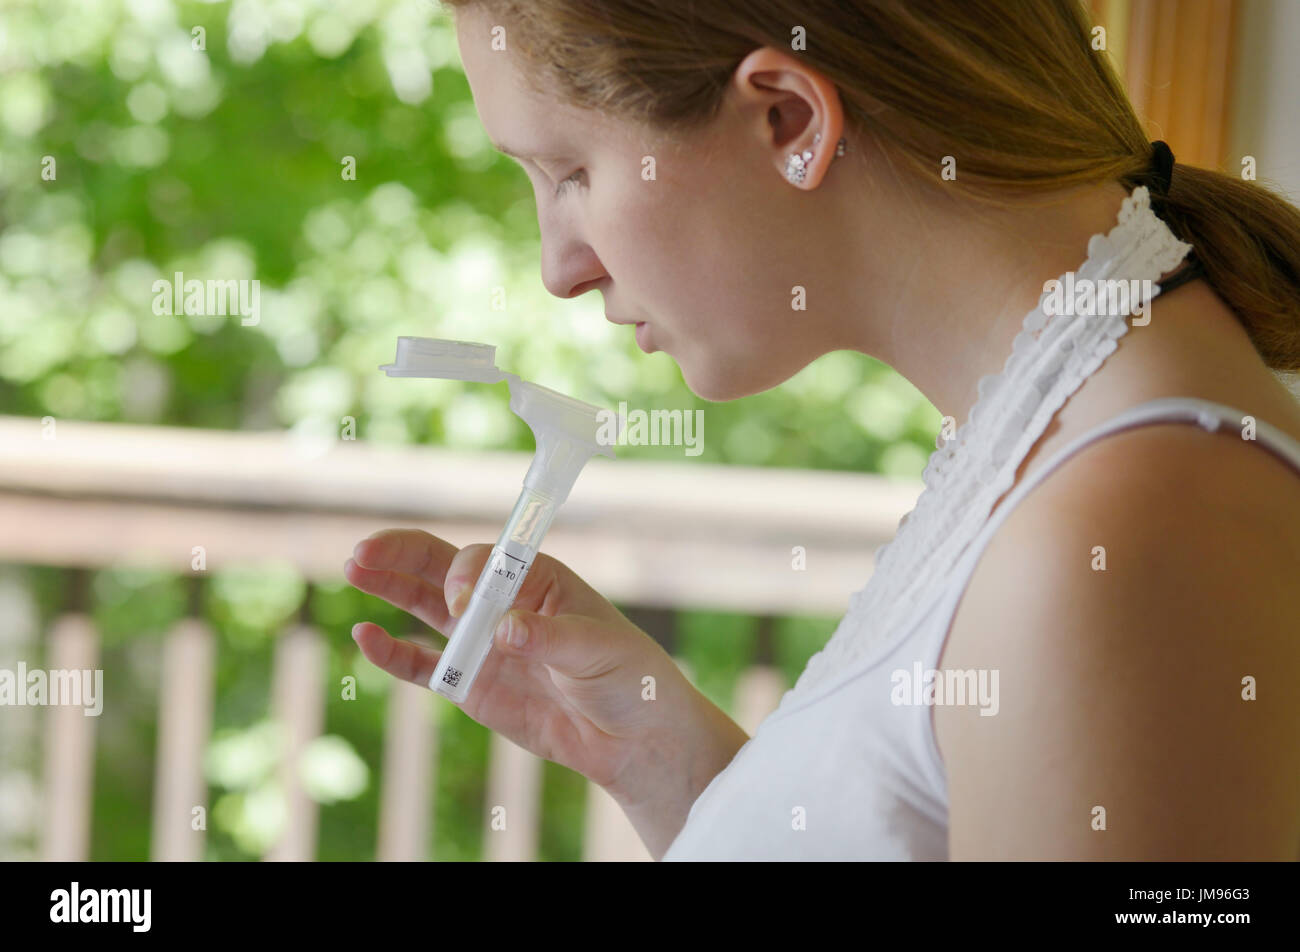 Girl collecting saliva for a mail-in DNA gene testing kit for ancestry and health genes - Stock Image